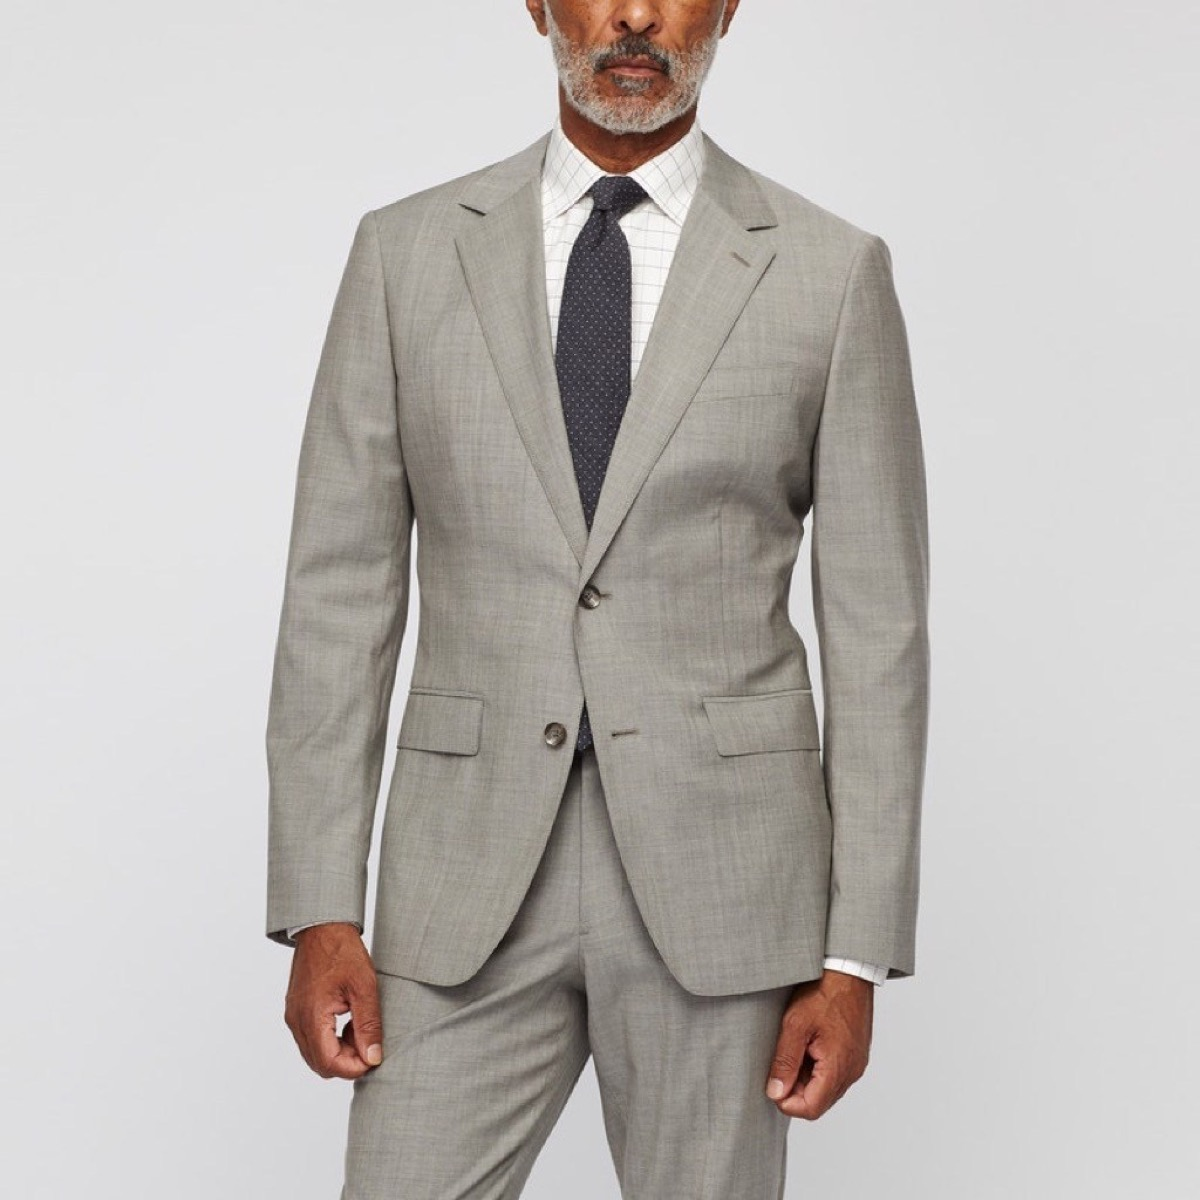 middle aged black man in gray suit